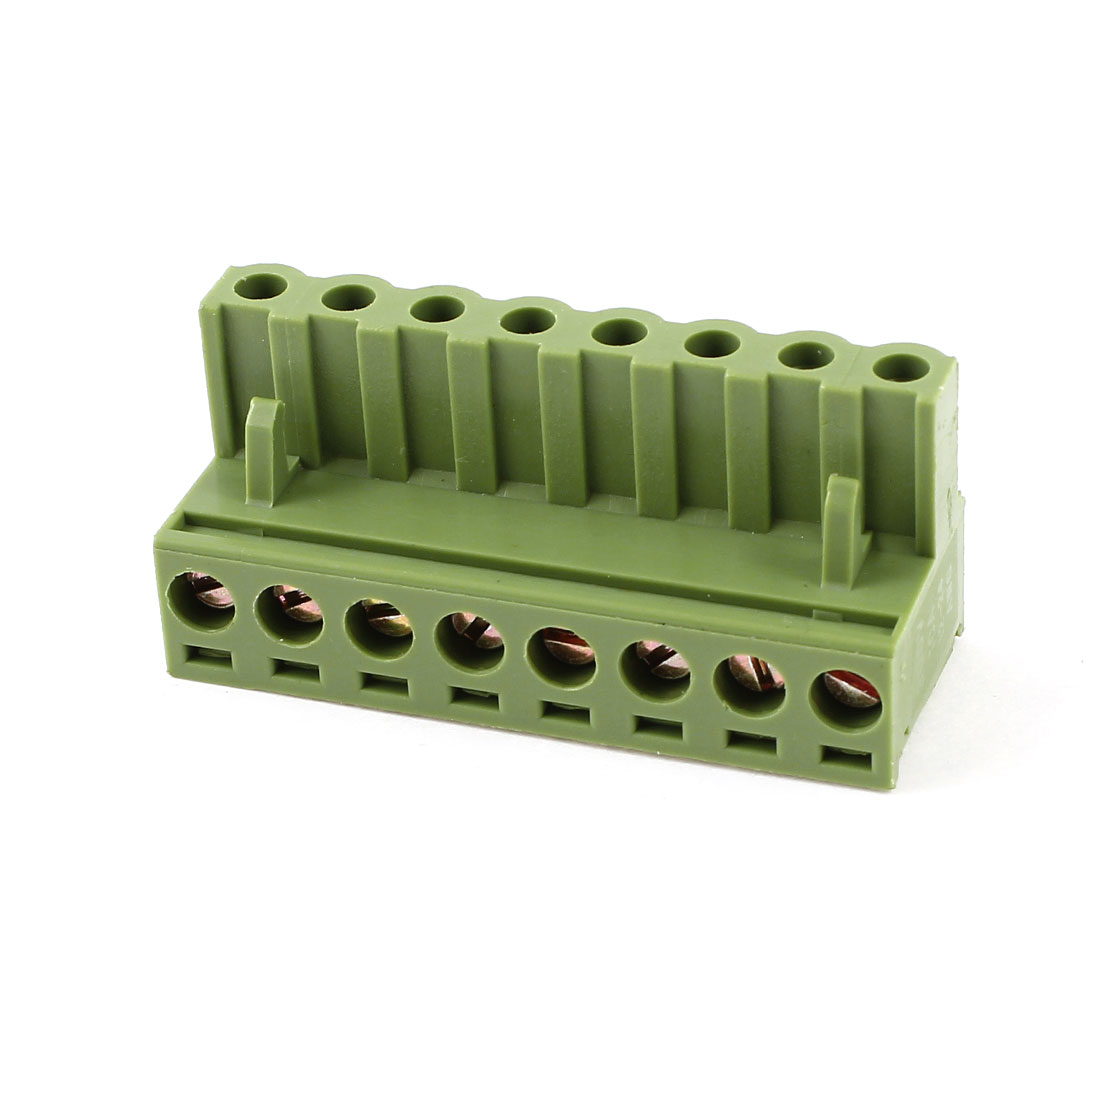 Green KF2EDGK 8 Position 5mm Pitch Screw Pluggable Terminal Blocks 300V 10A